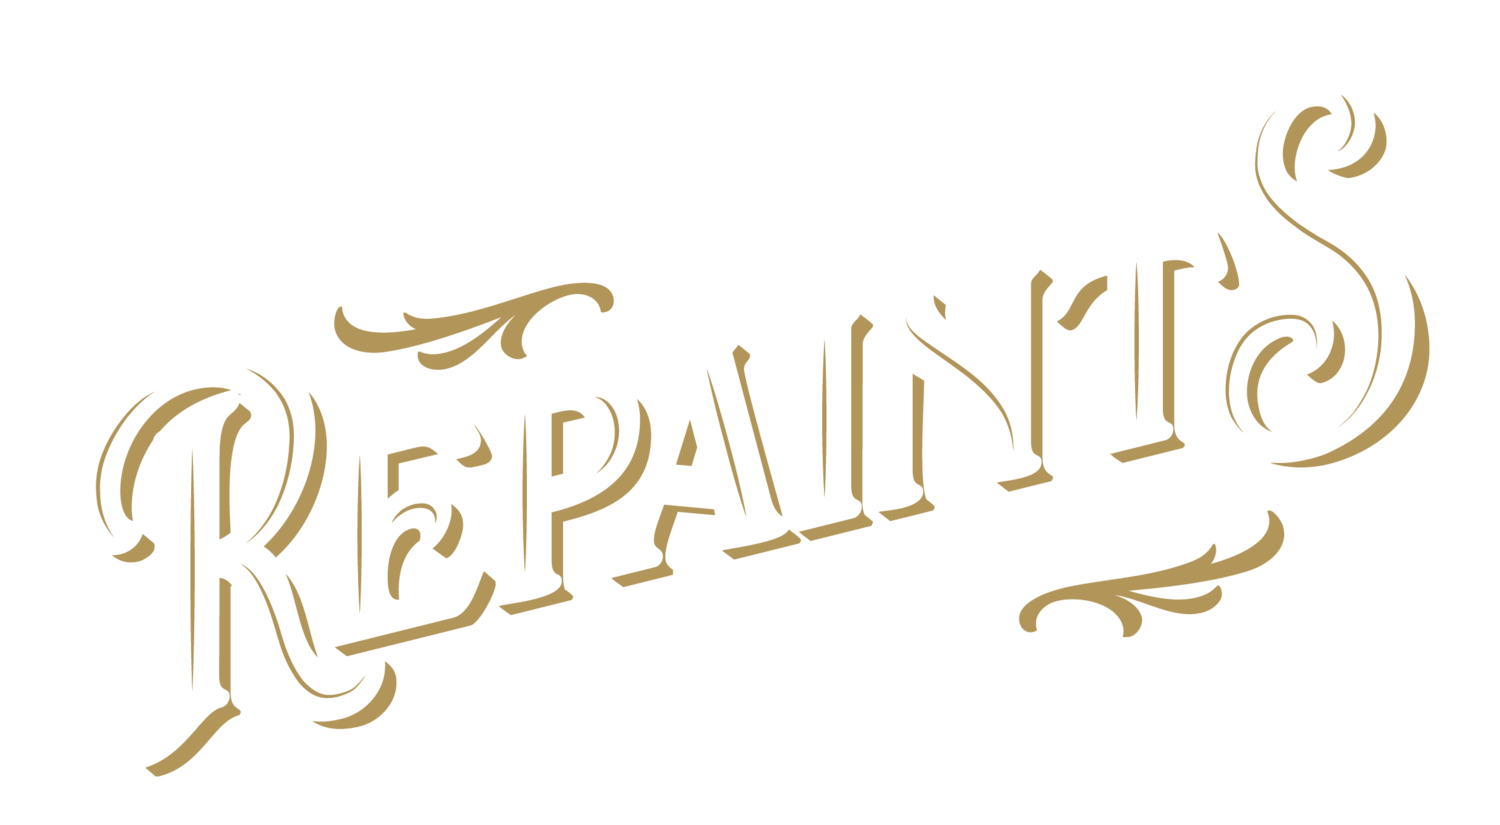 WANAKA REPAINTS - Award winning team specialising in home repaints